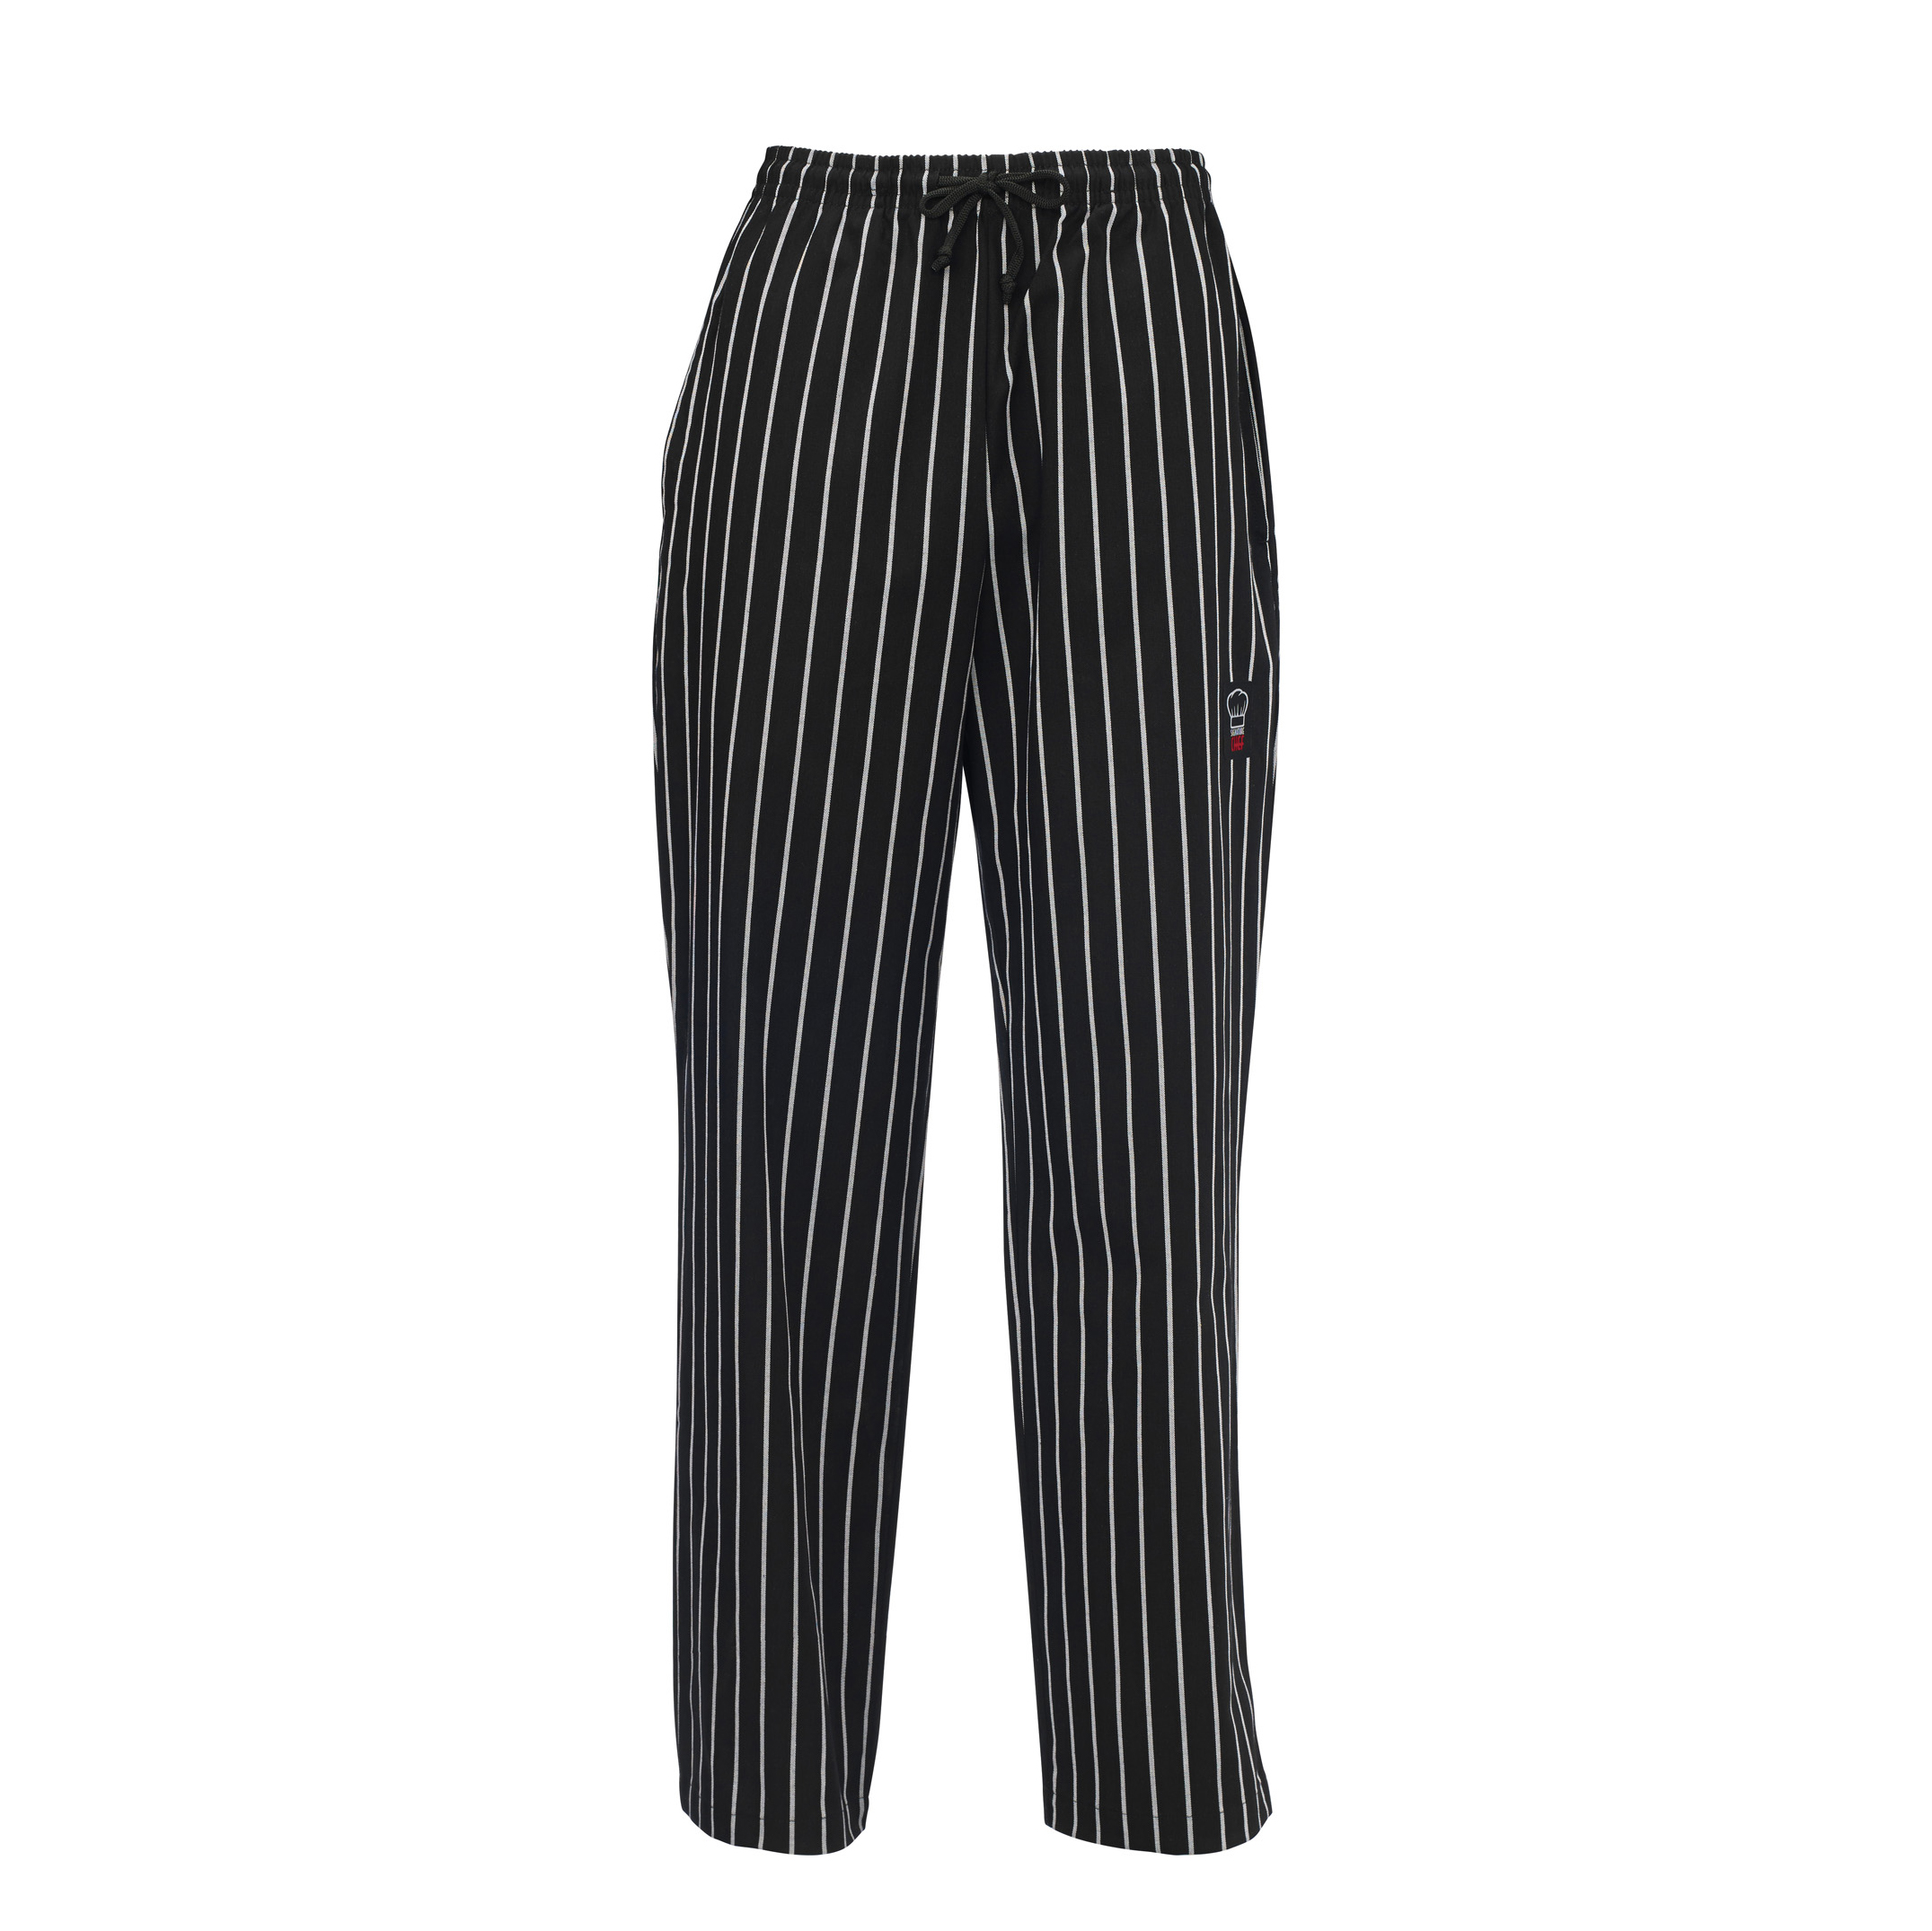 Winco UNF-3CL chef's pants